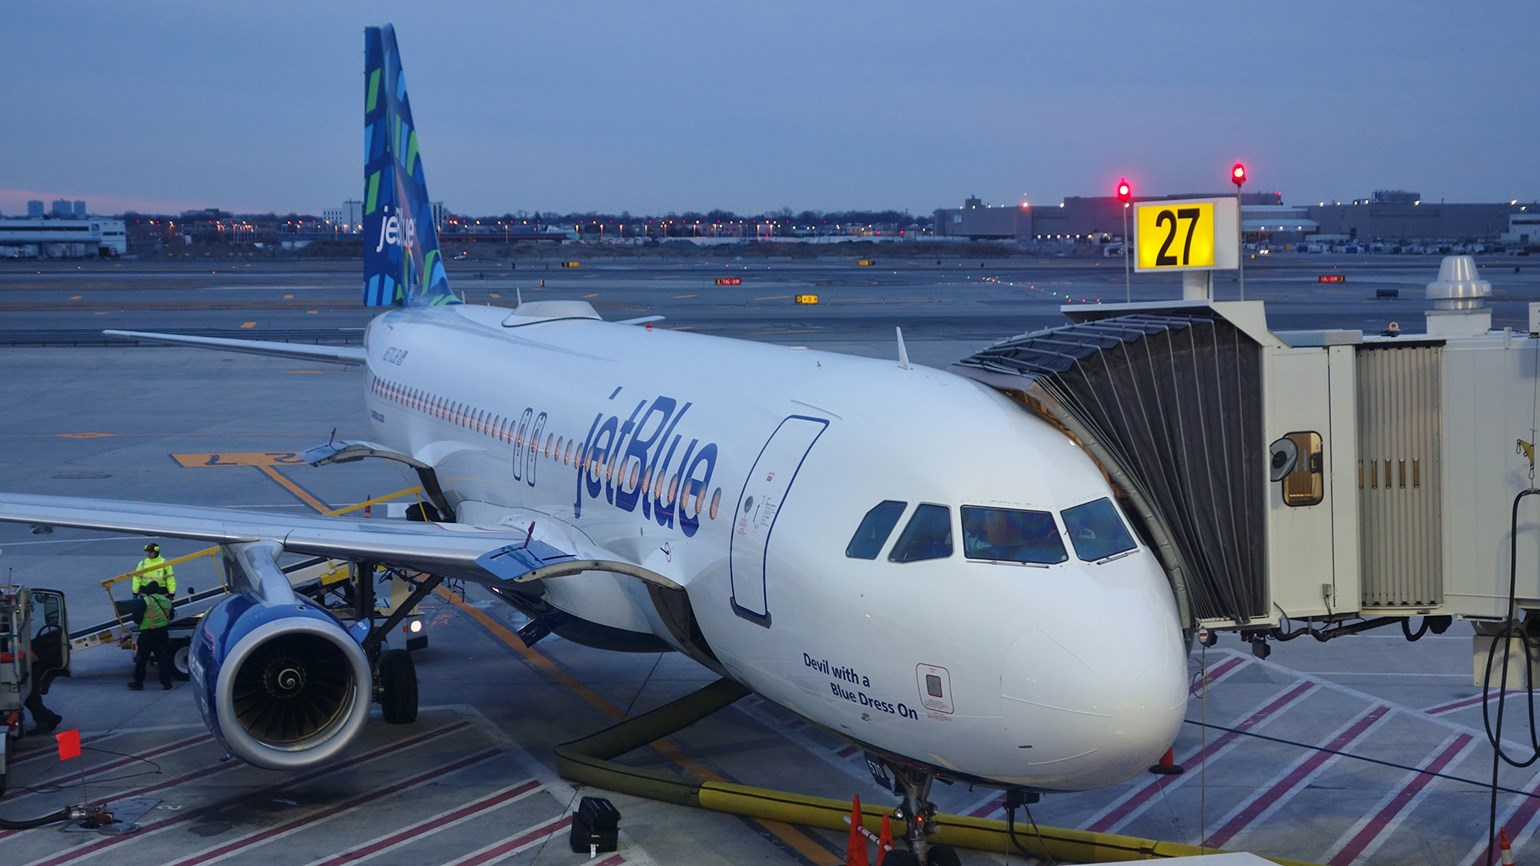 JetBlue at JFK